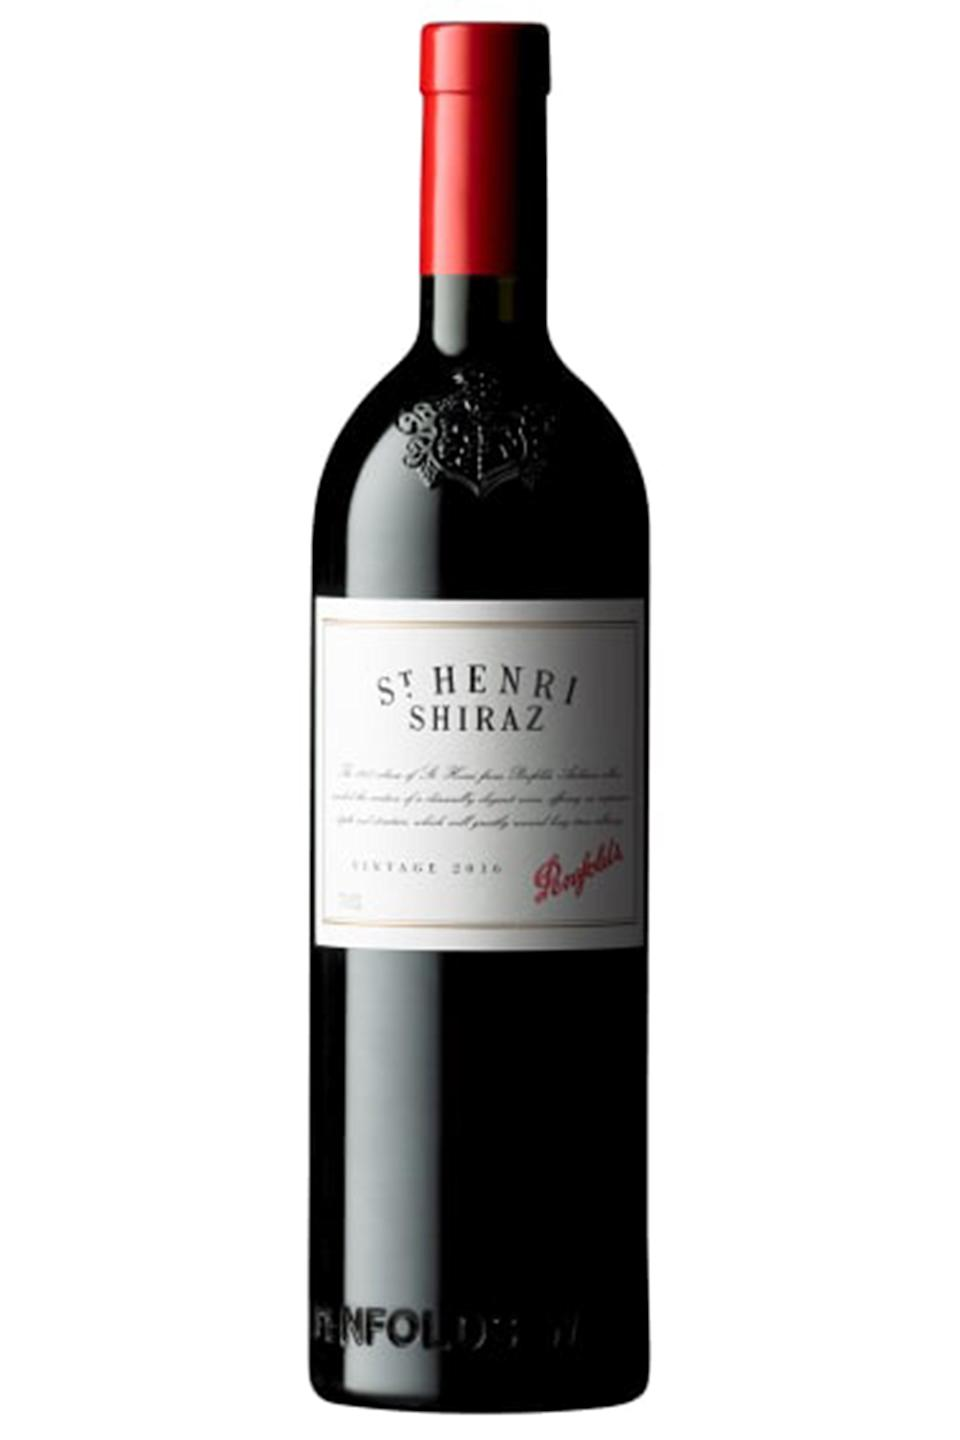 """<p>wine.com</p><p><strong>$104.99</strong></p><p><a href=""""https://go.redirectingat.com?id=74968X1596630&url=https%3A%2F%2Fwww.wine.com%2Fproduct%2Fpenfolds-st-henri-shiraz-2016%2F568061&sref=https%3A%2F%2Fwww.townandcountrymag.com%2Fleisure%2Fdrinks%2Fg32392235%2Fbest-red-wine%2F"""" rel=""""nofollow noopener"""" target=""""_blank"""" data-ylk=""""slk:Shop Now"""" class=""""link rapid-noclick-resp"""">Shop Now</a></p><p>""""For a classic Barossa Shiraz that demonstrates what Australian Shiraz should be, the Penfolds RWT (or bin 798) is a full-bodied powerhouse that is also elegantly balanced,"""" Osborn says. """"A beautiful harmony of rich fruit and uplifting floral notes make this a complex and beautiful wine.""""</p>"""